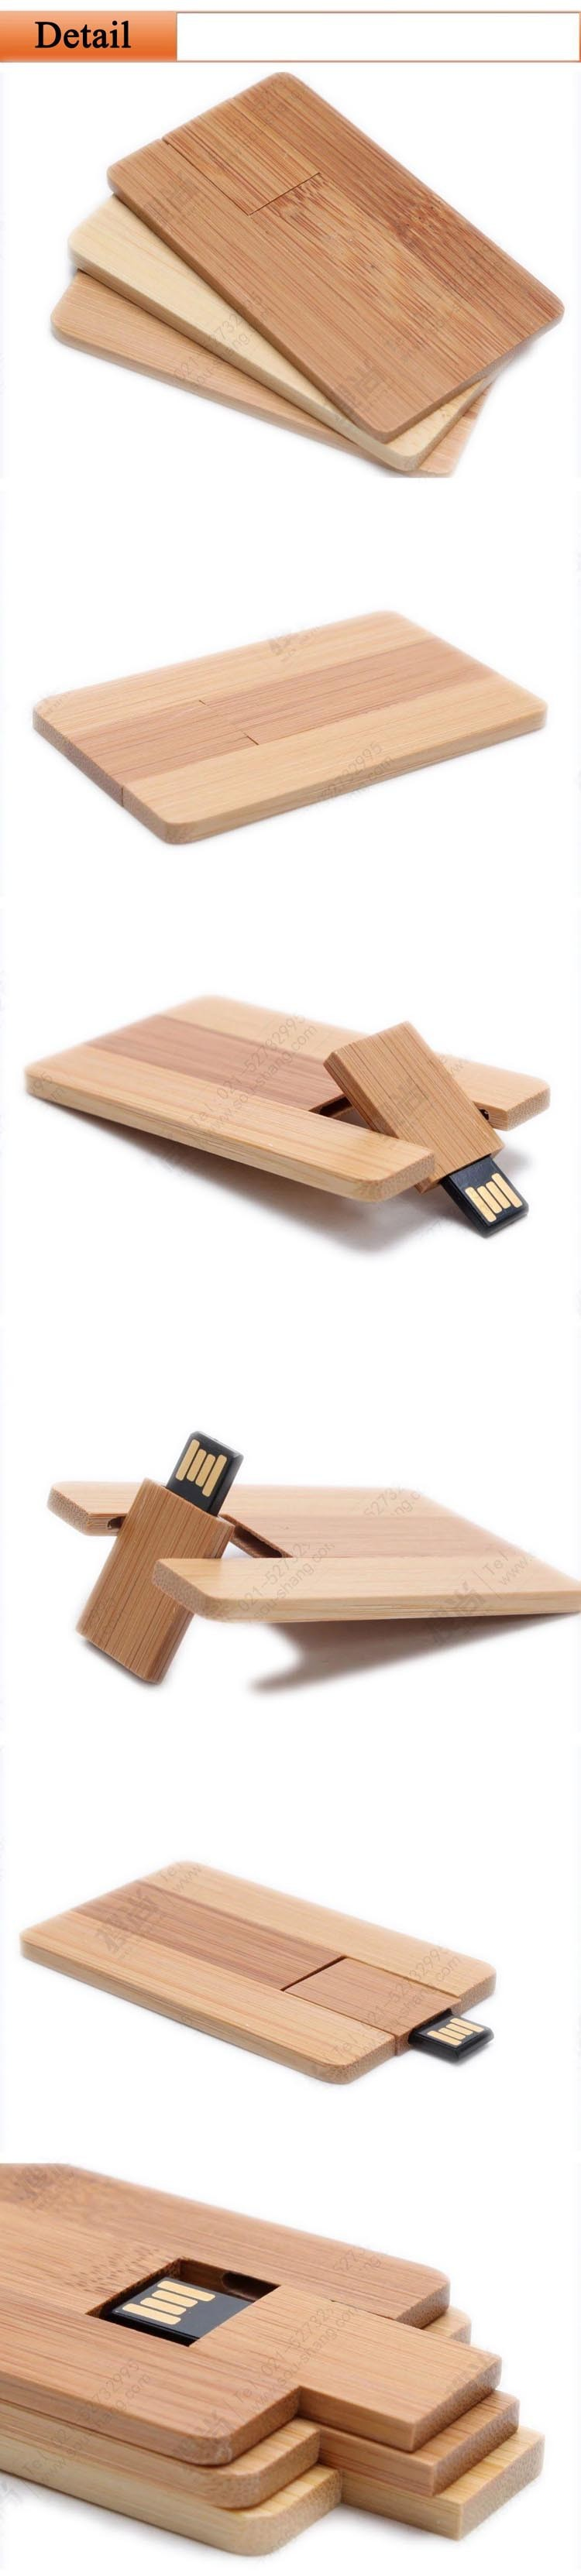 Custom Logo Pendrive Credit Card Usb Flash Drive Wood Pen ...